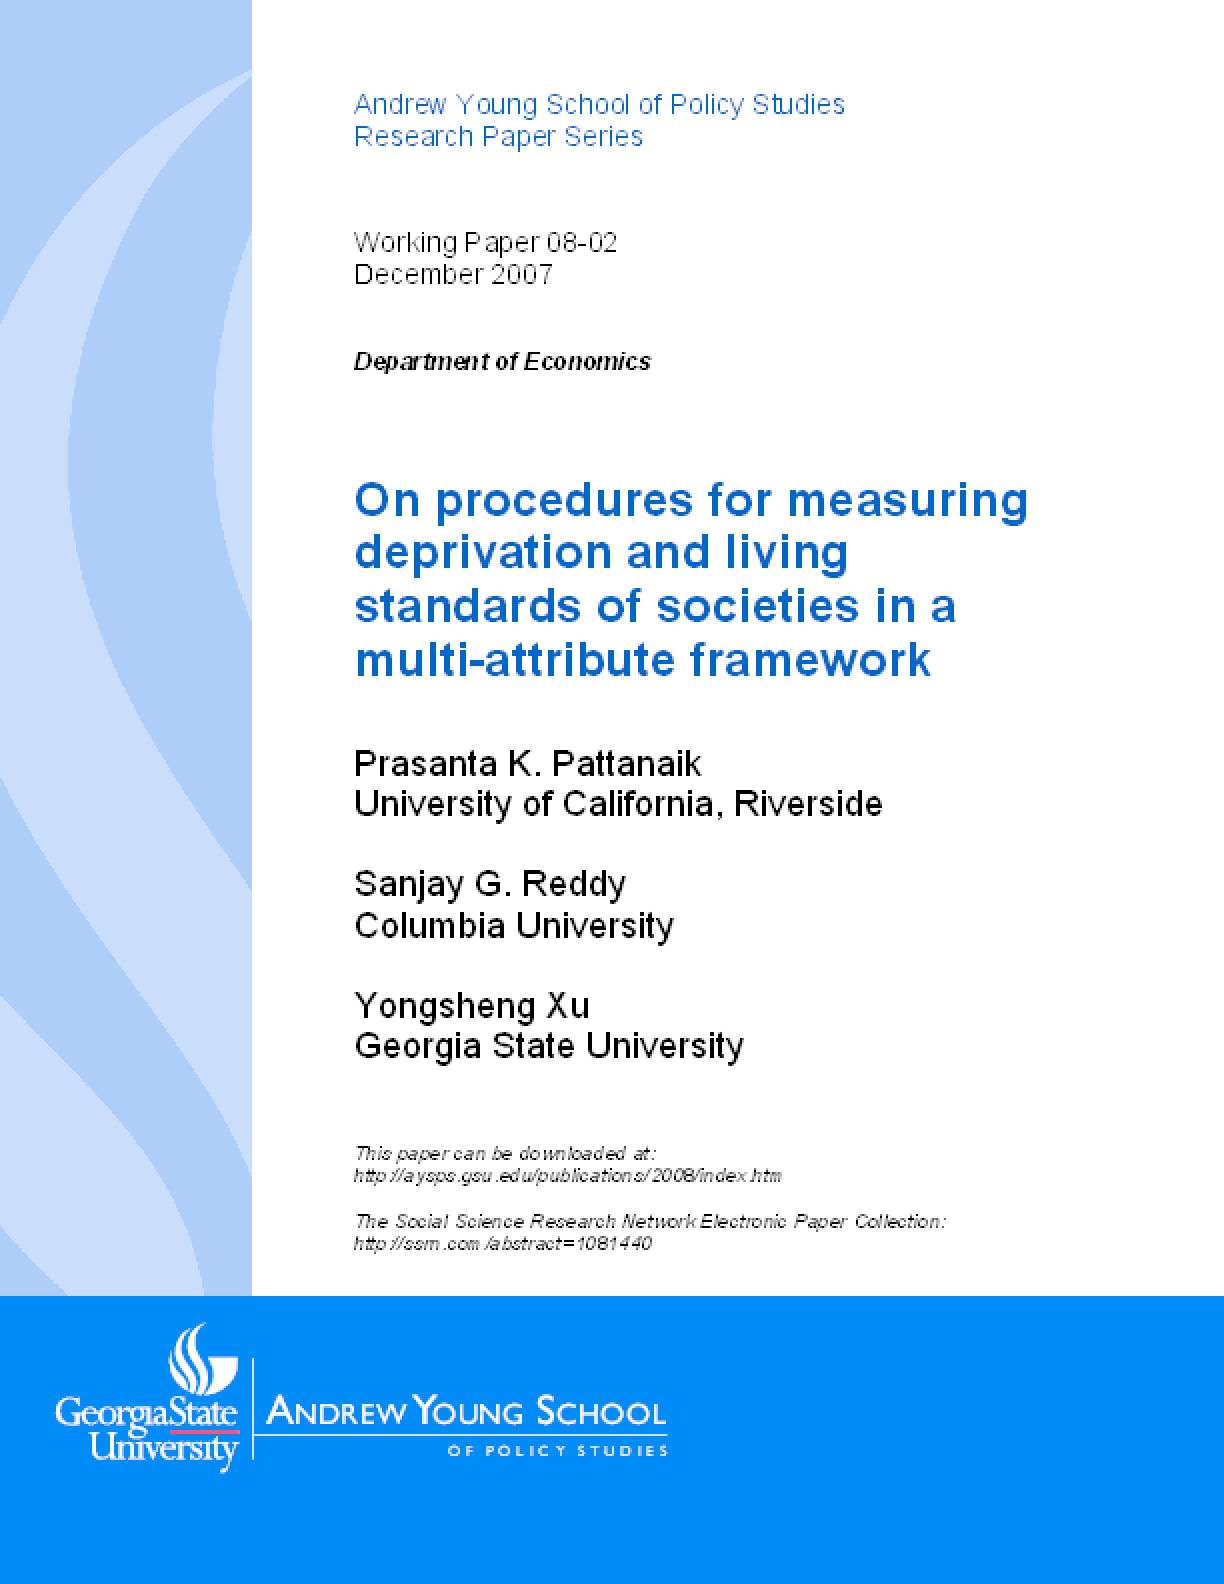 On procedures for measuring deprivation and living standards of societies in a multi-attribute framework